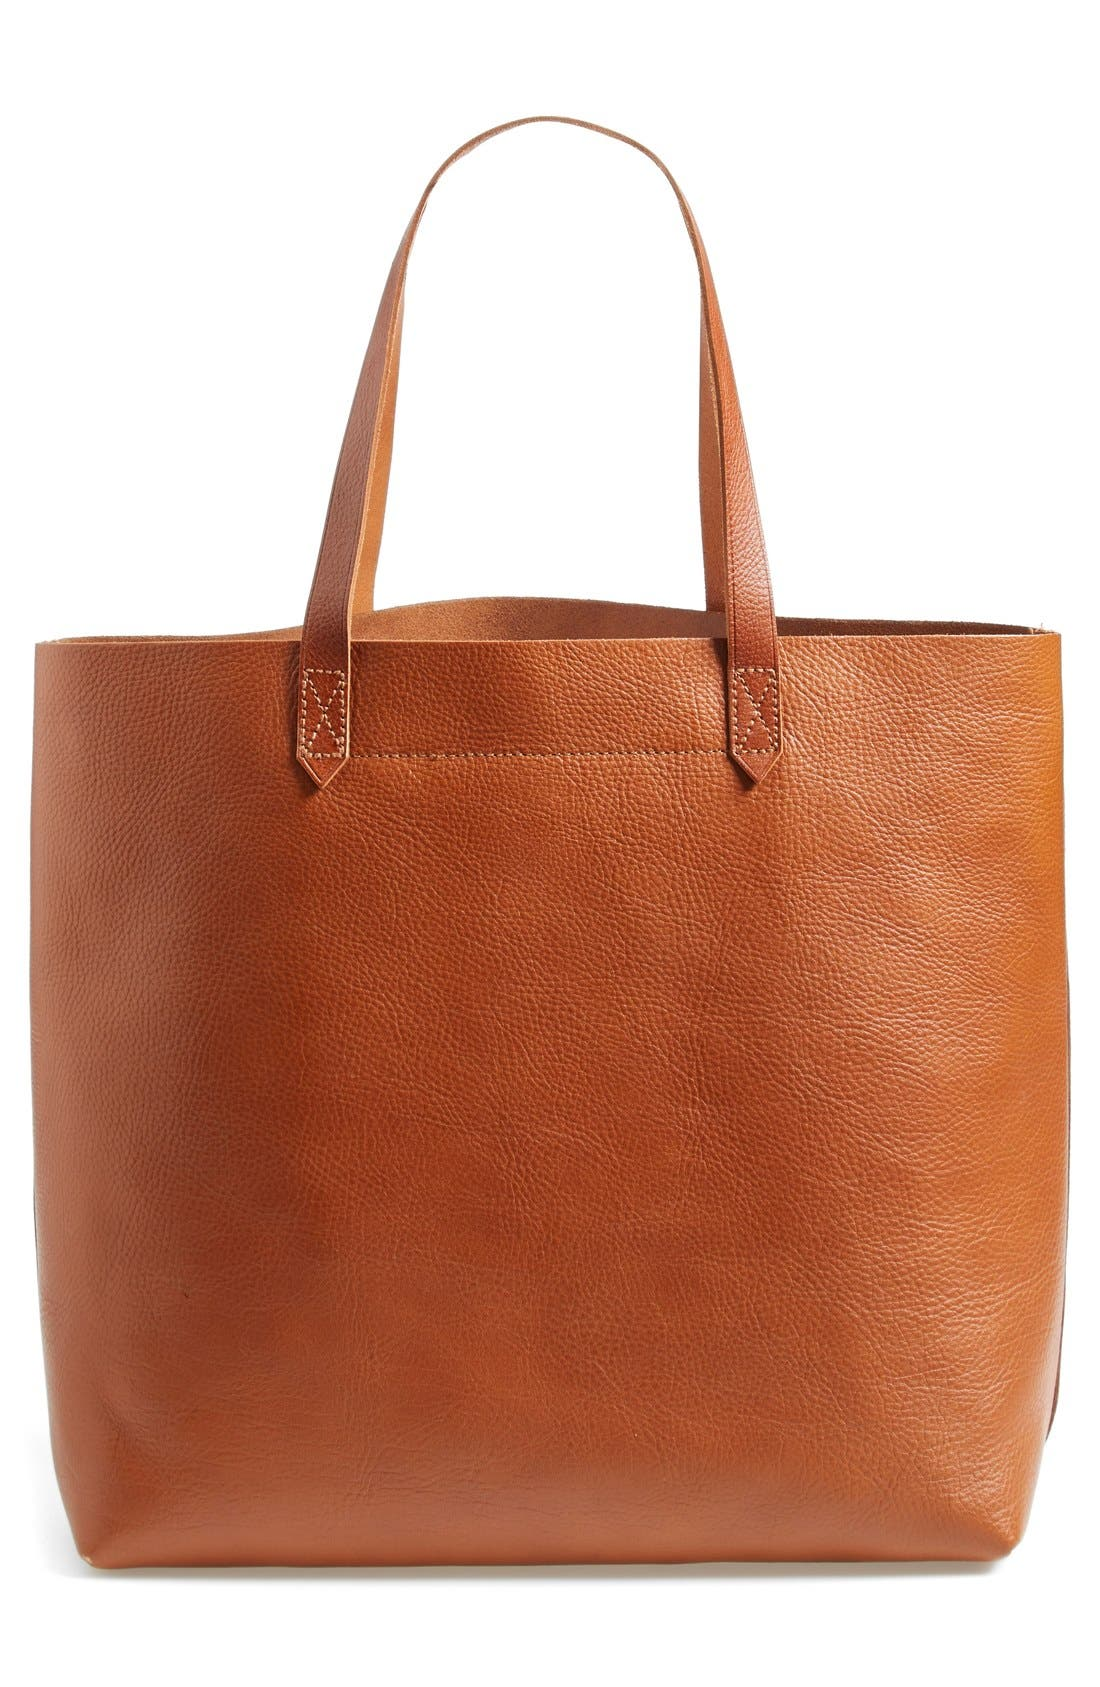 Alternate Image 1 Selected - Madewell 'The Transport' Leather Tote